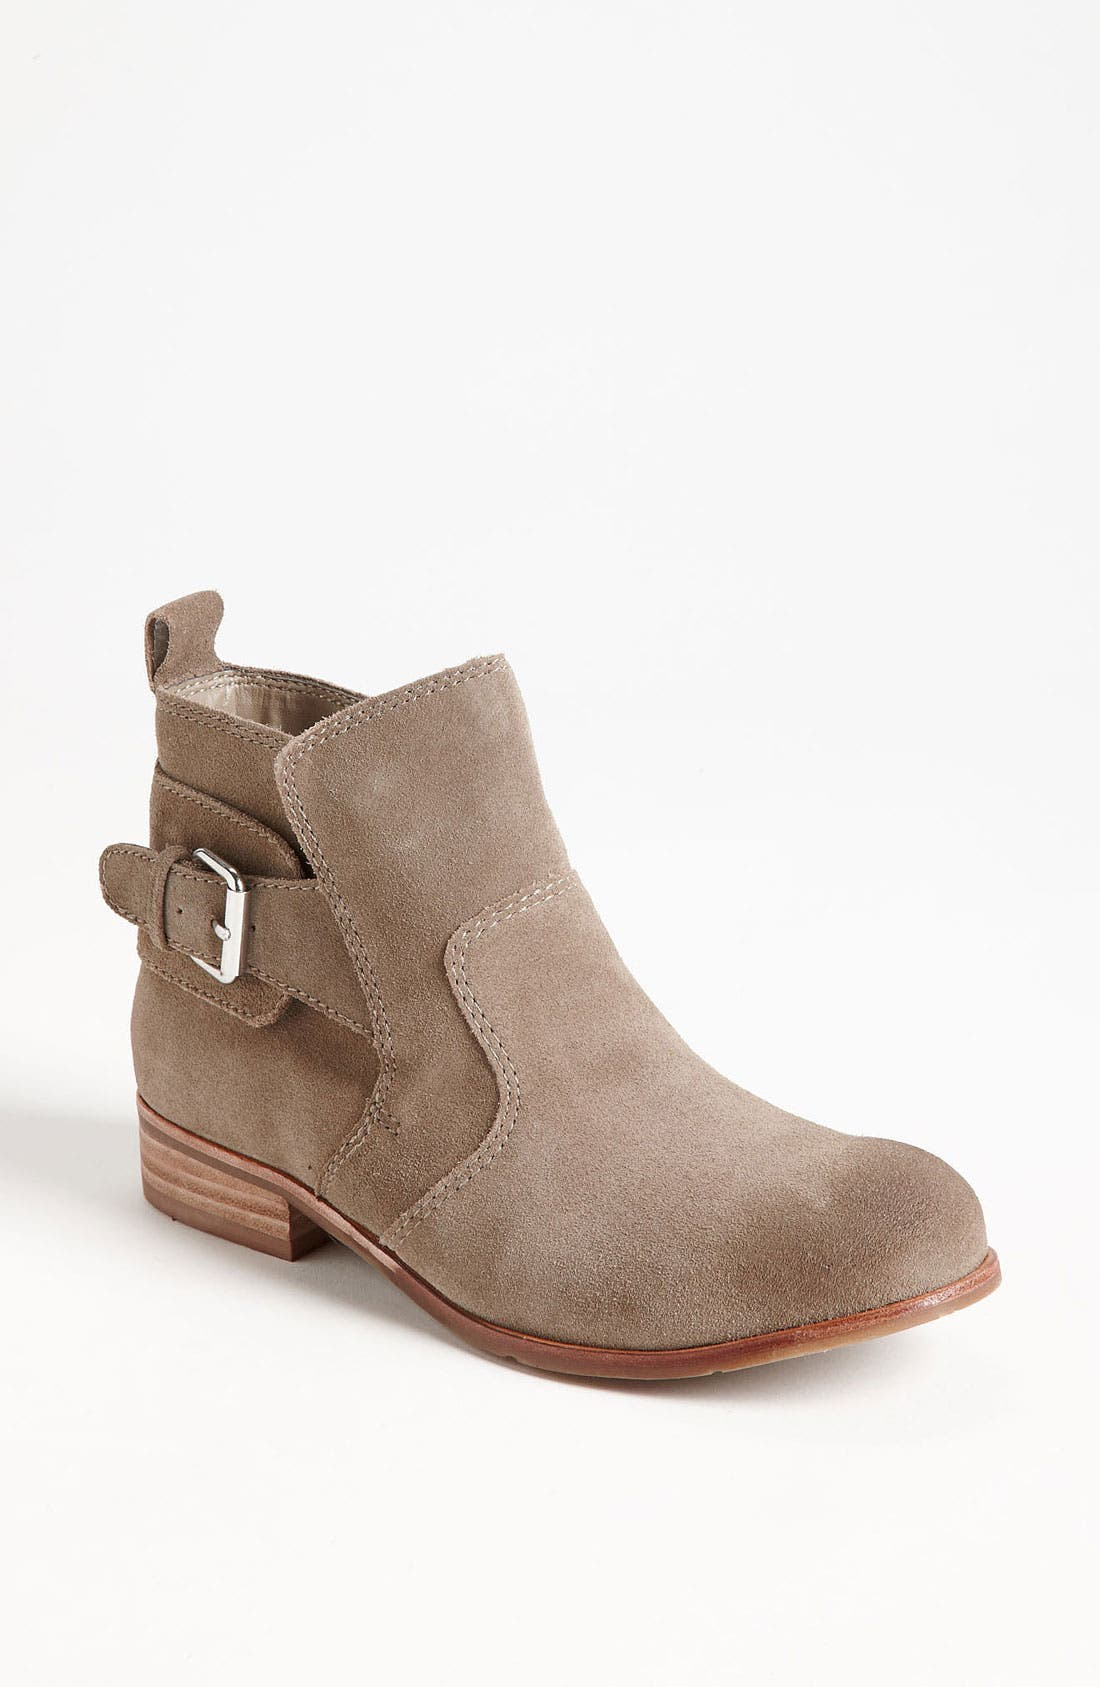 Main Image - DV by Dolce Vita 'Rodge' Boot